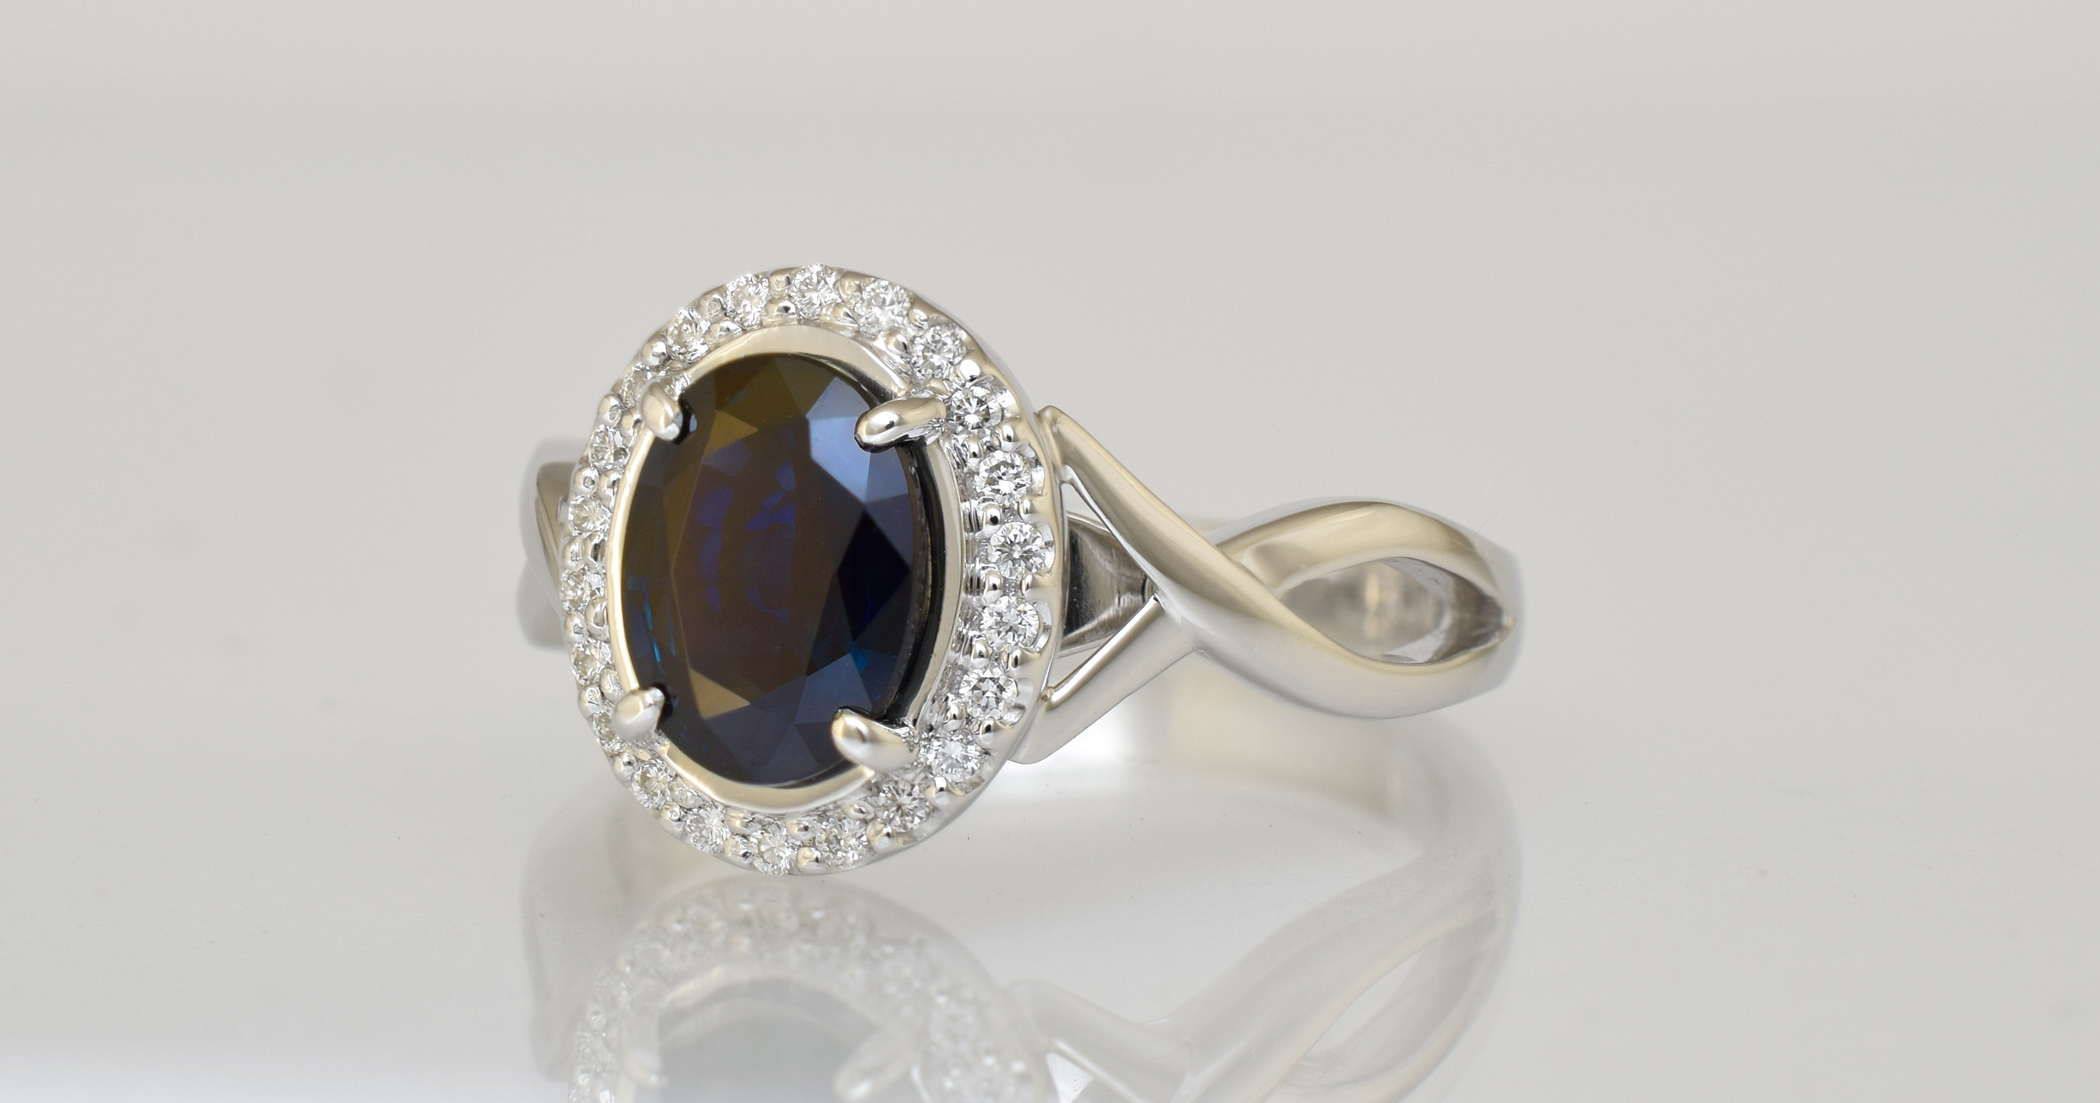 The ring remade in white gold with new F/Vs diamonds